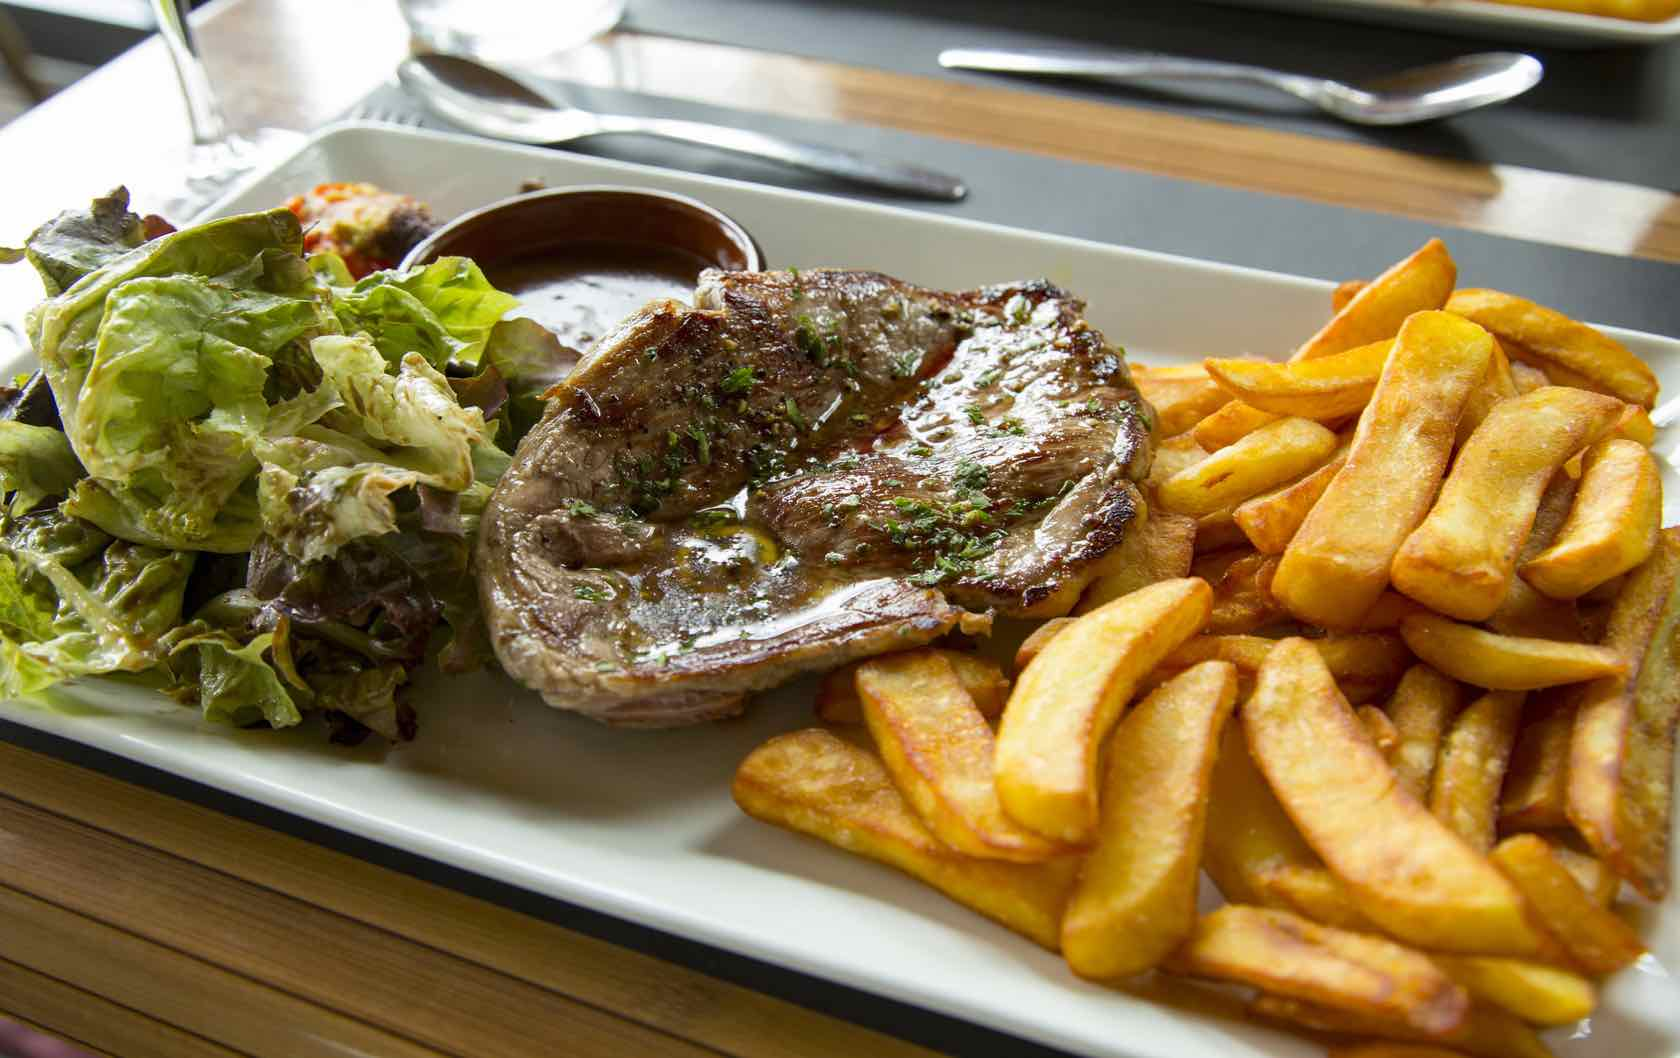 Classic Savory French Dishes Steak frites